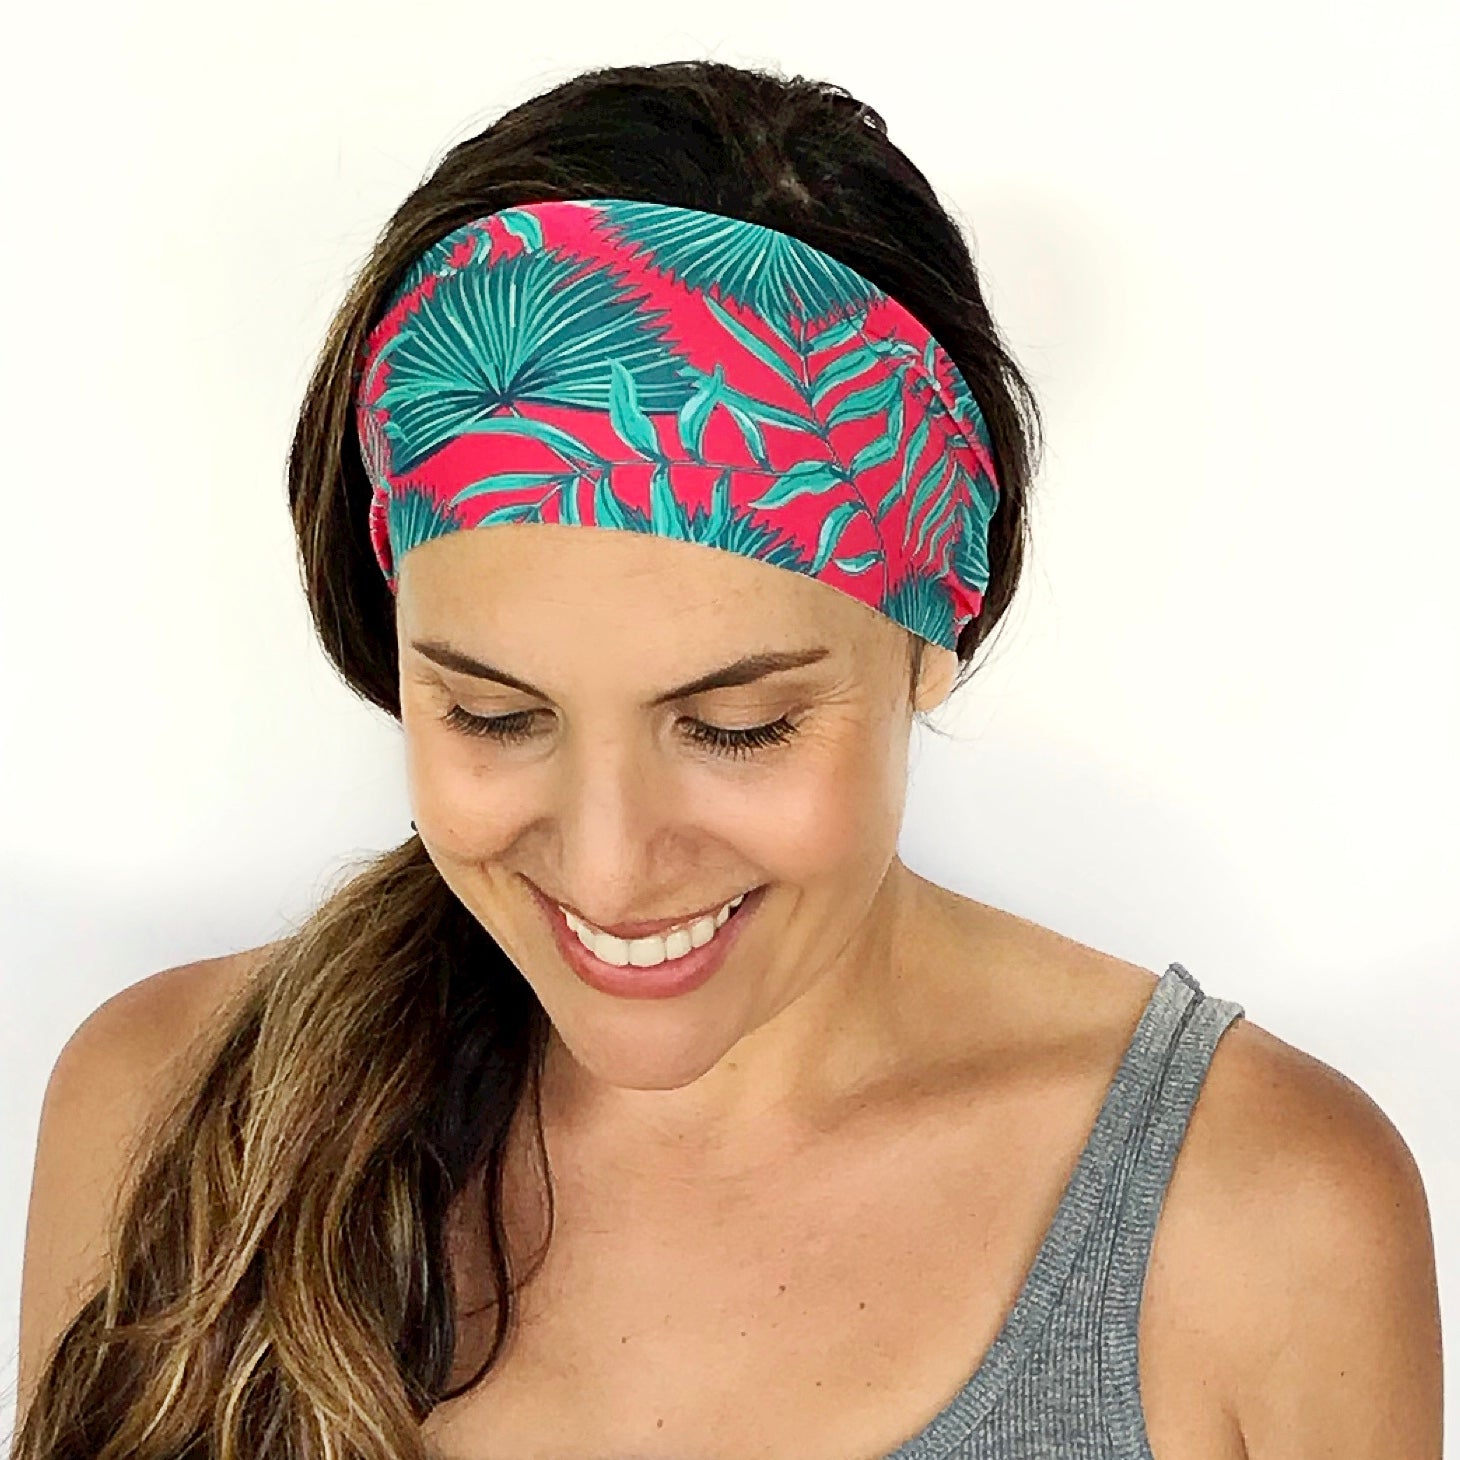 Maui Wowie Workout Headband